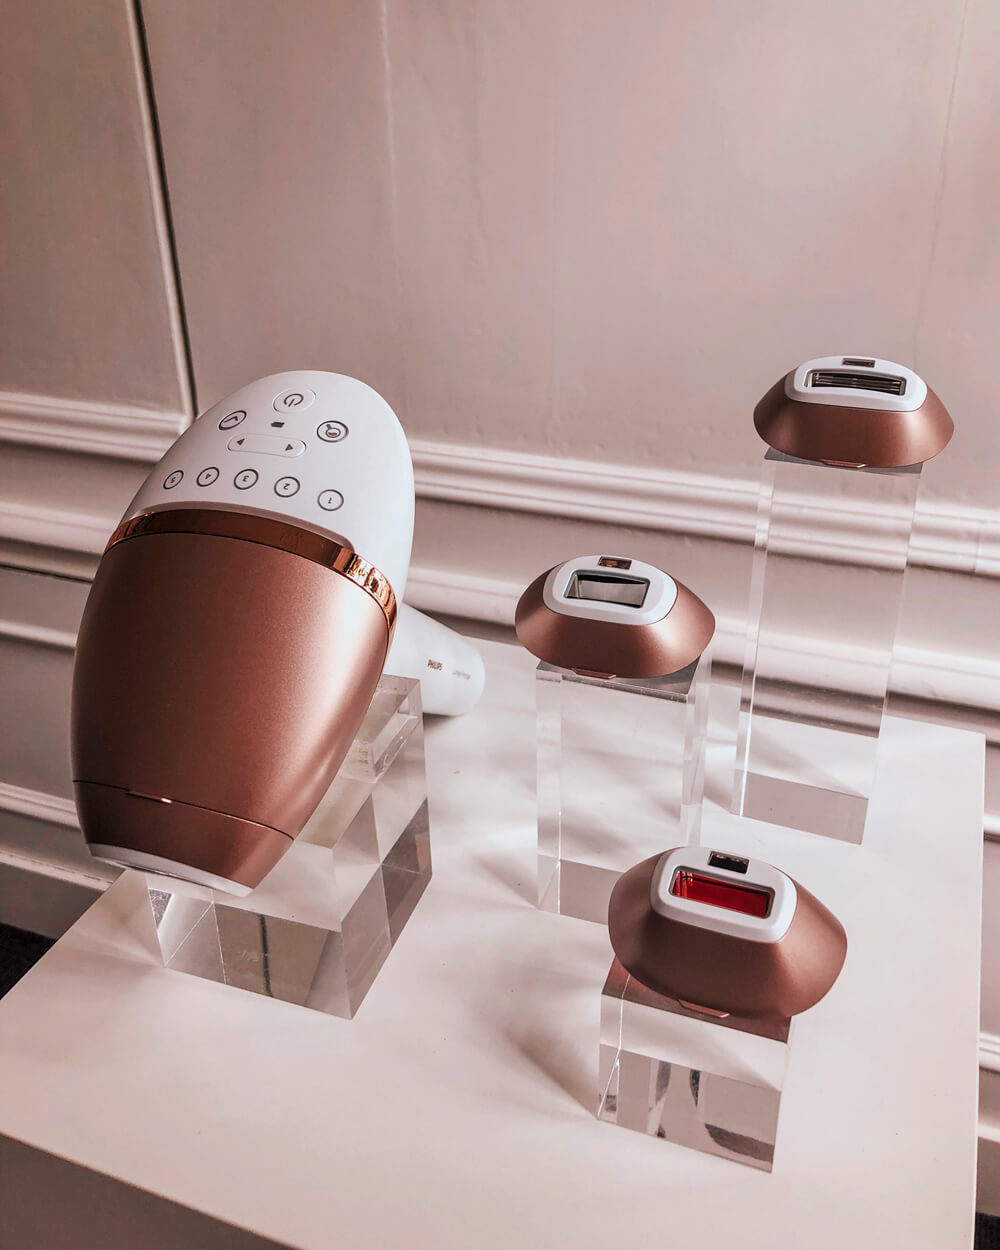 sandra stoicovici philips lumea Global Beauty Summit